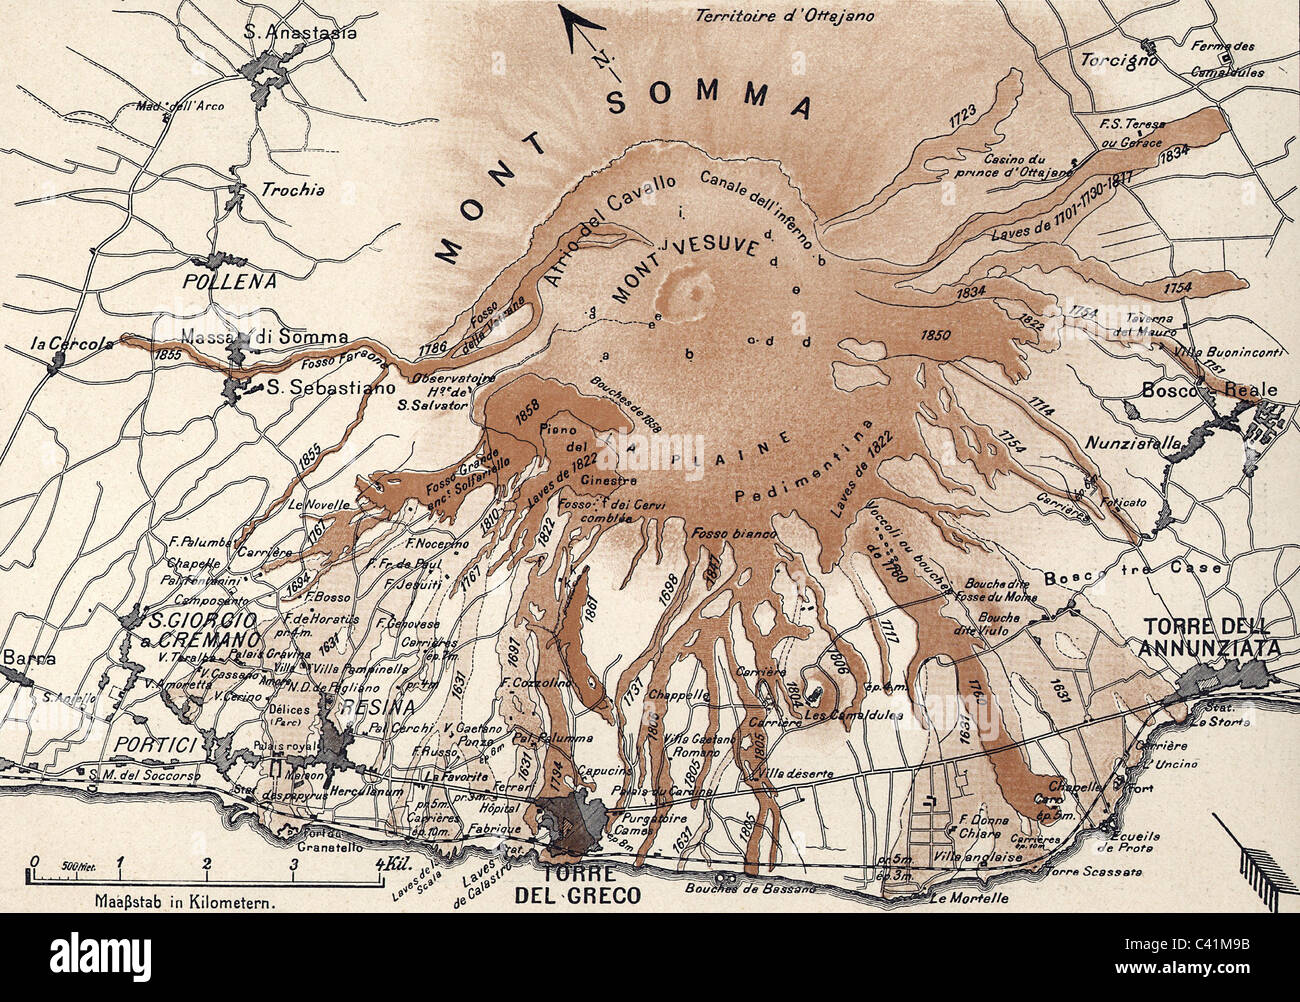 Disasters Volcanos Mount Vesuvius Map Of Lava Flows In The Year - Mount vesuvius map